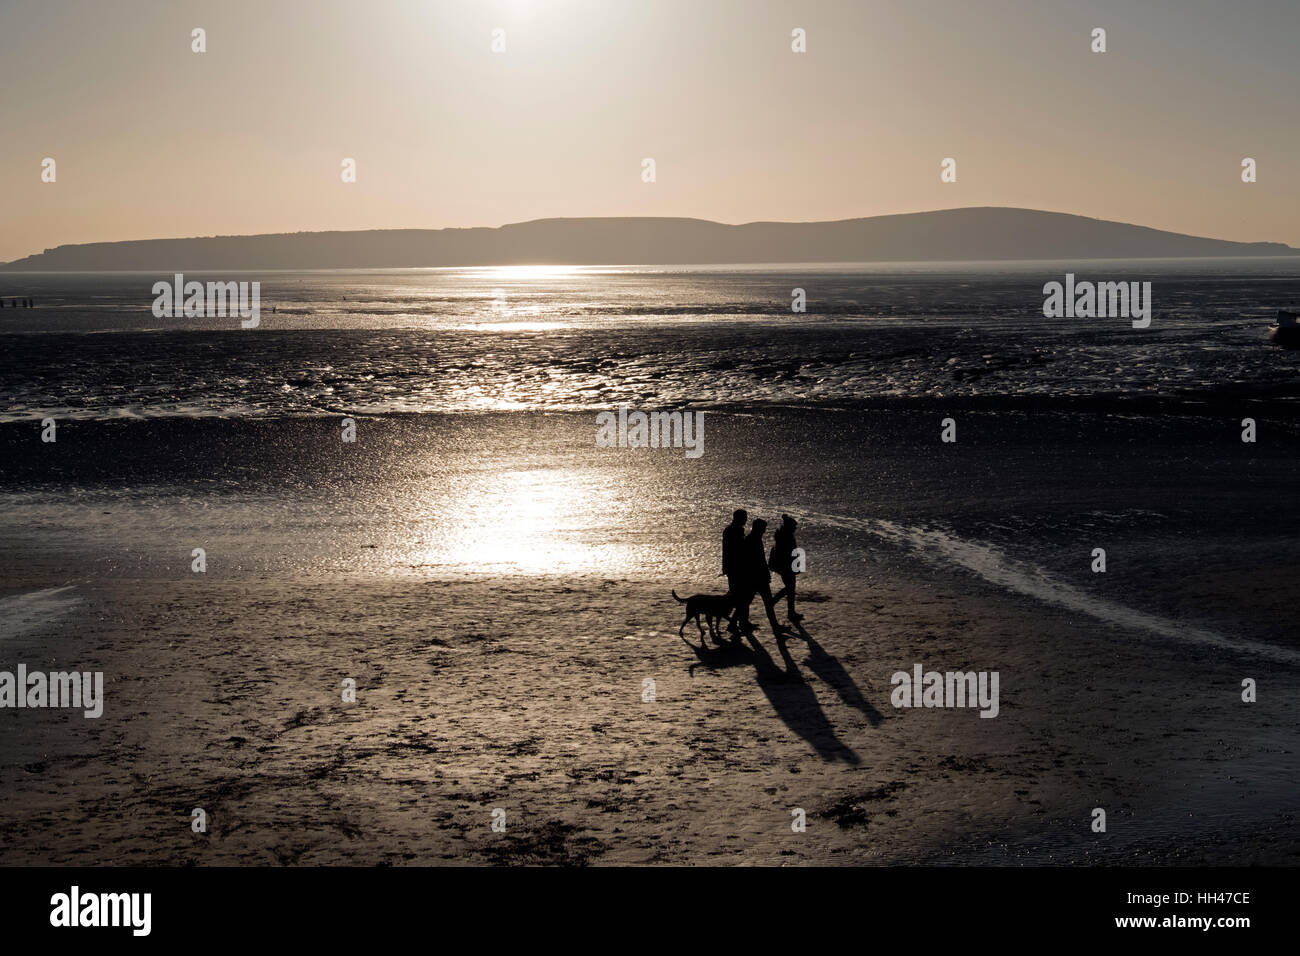 Dog walkers on the beach on a sunny winter day in Weston-super-Mare, England Stock Photo